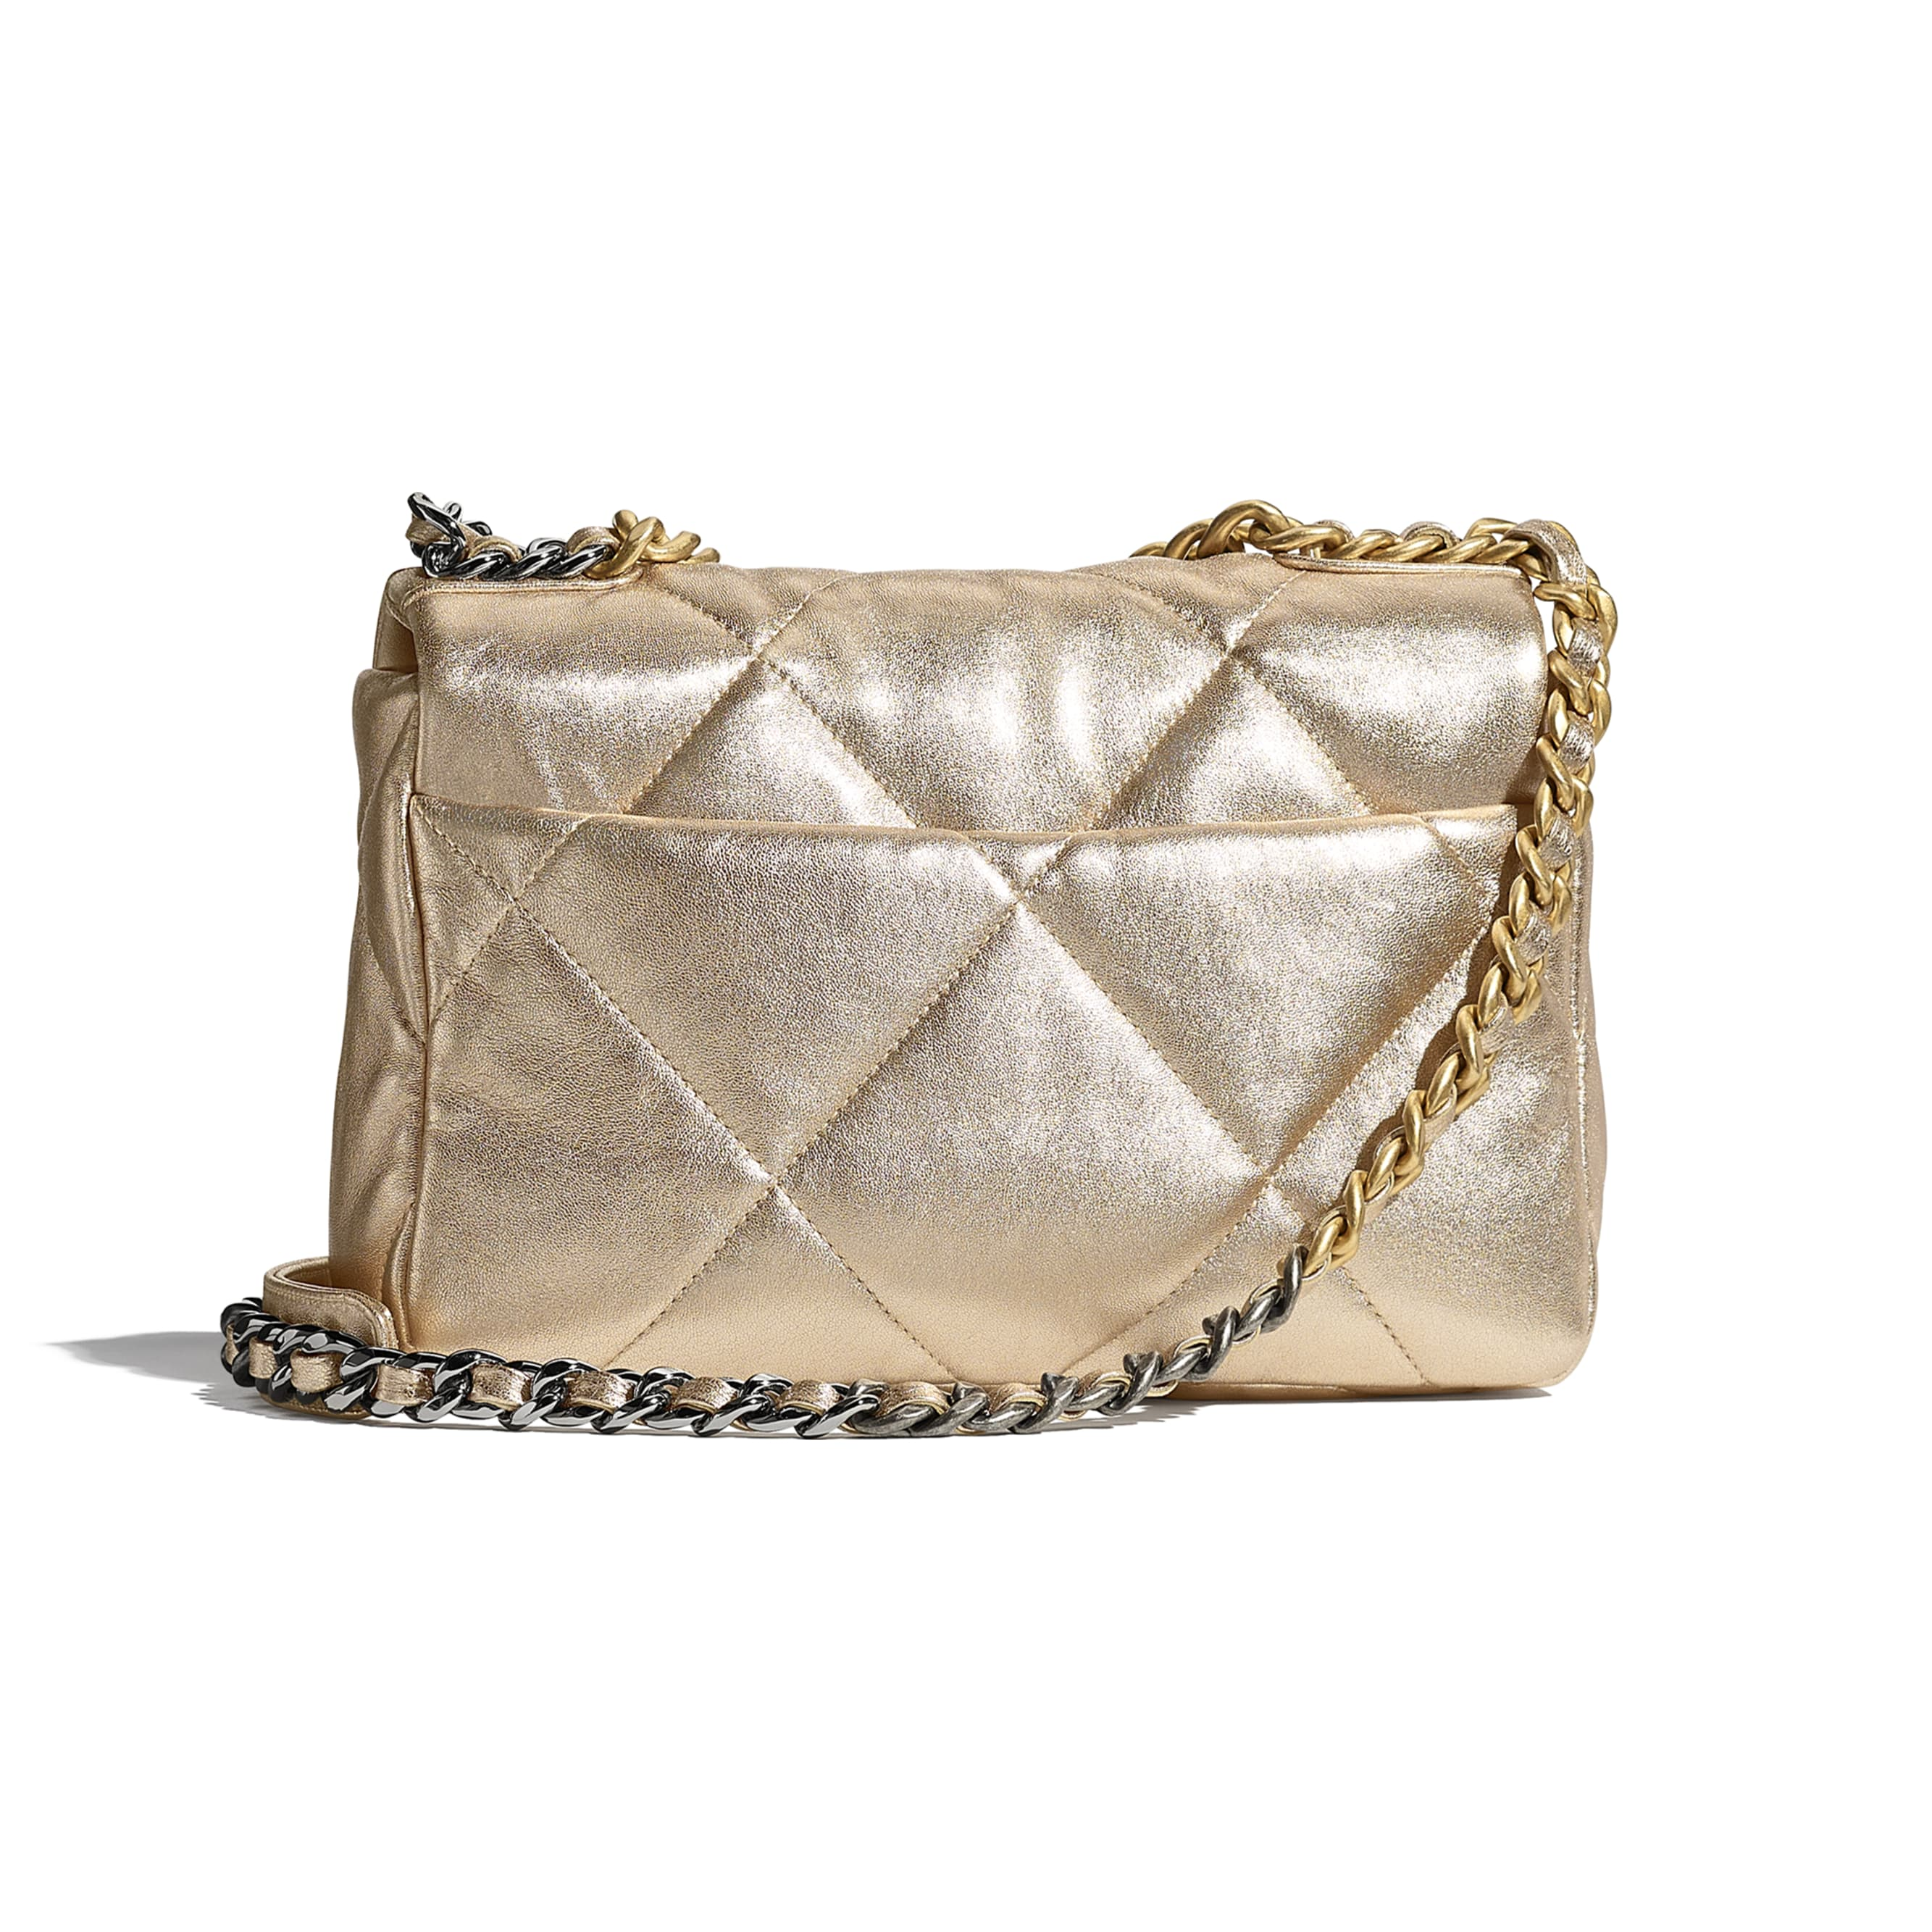 CHANEL 19 Flap Bag - Gold - Metallic Lambskin, Gold-Tone, Silver-Tone & Ruthenium-Finish Metal - CHANEL - Alternative view - see standard sized version